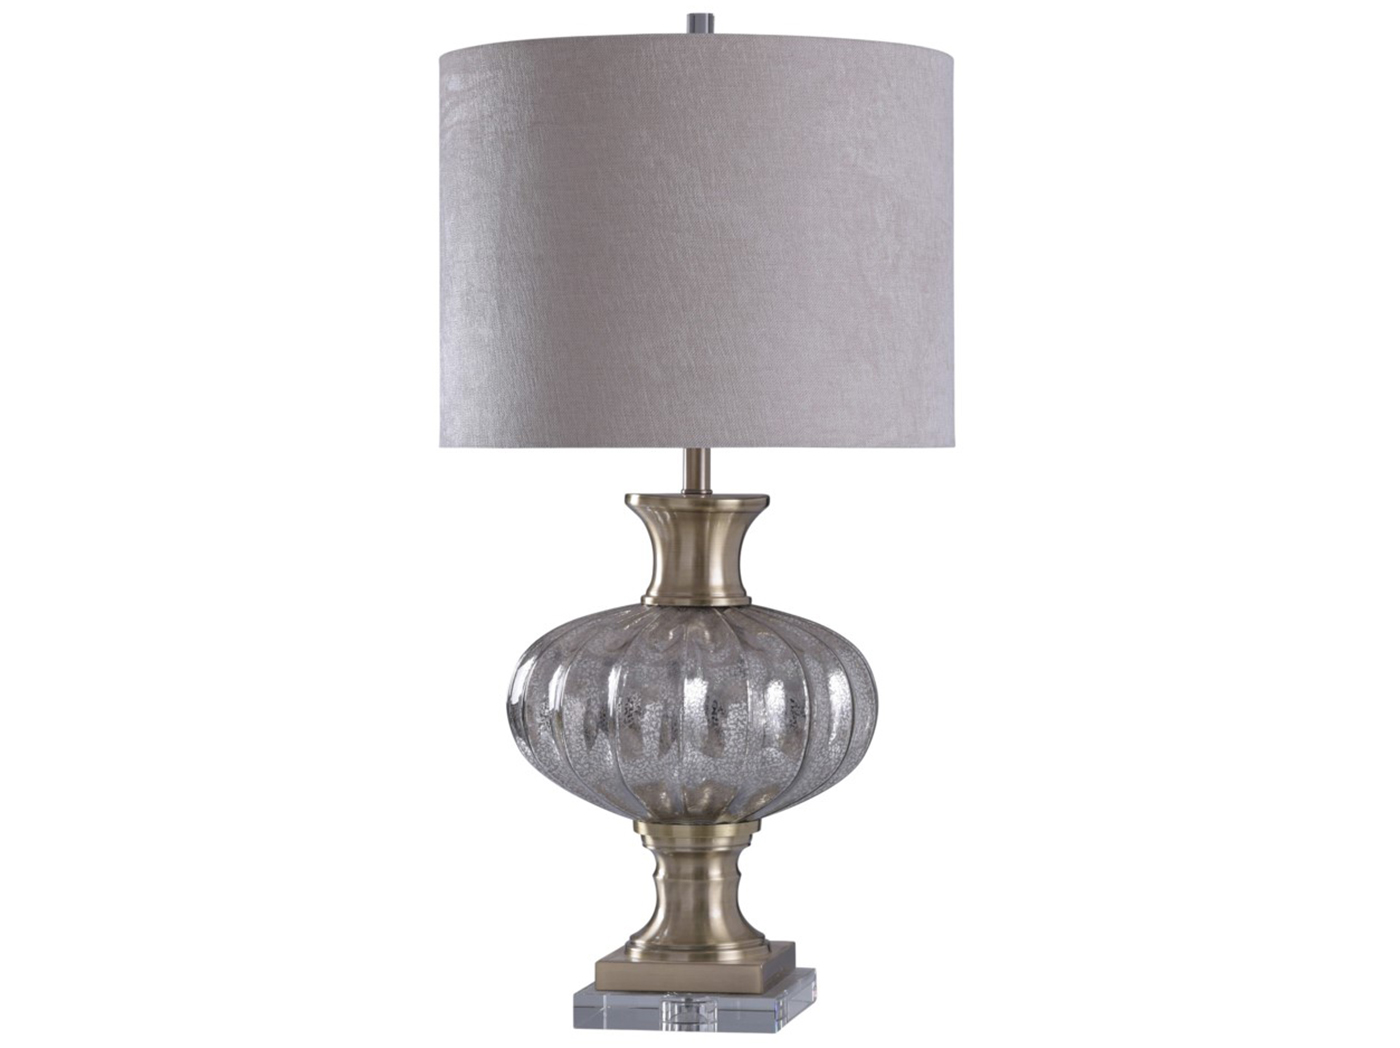 "Mercury Glass Table Lamp 36""H"